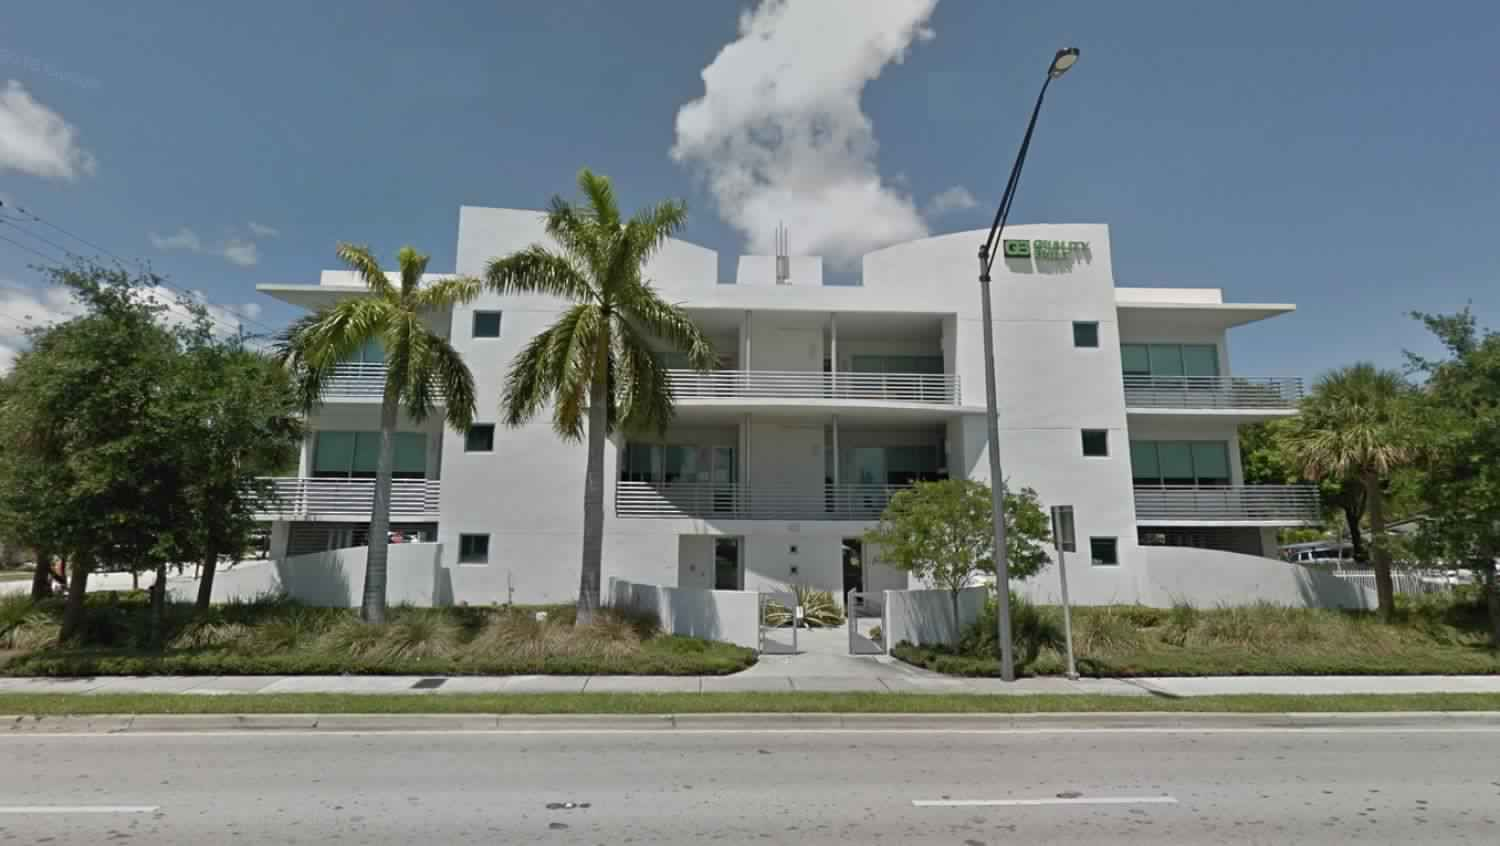 LEASED – 12,500 SF Office Headquarters Lease Transaction